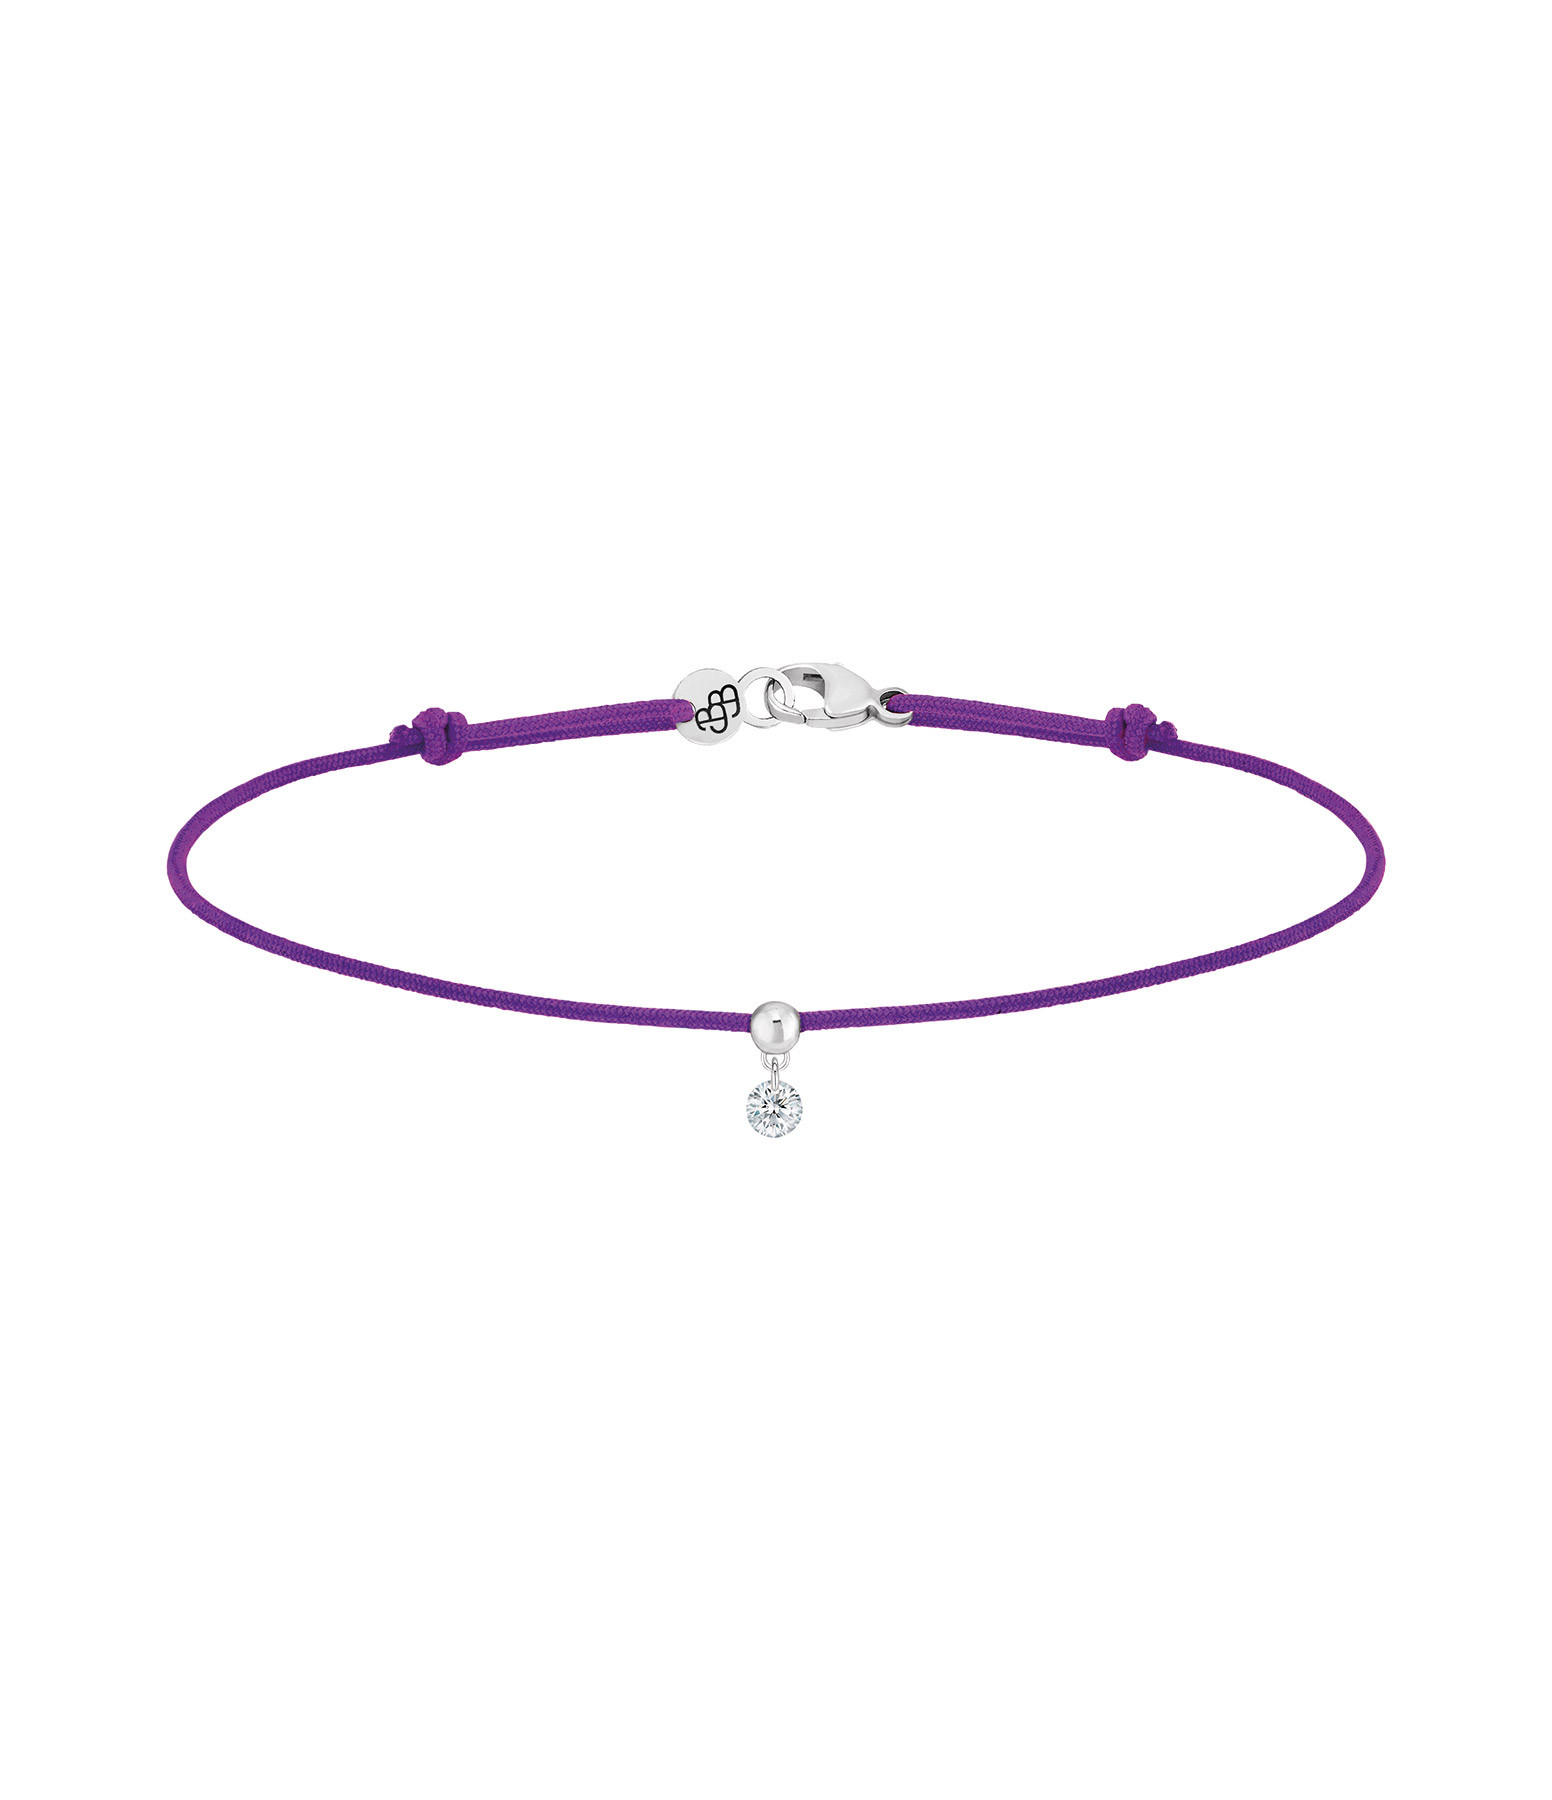 LA BRUNE & LA BLONDE - Bracelet BB Diamant Brillant Cordon Violet Or Jaune